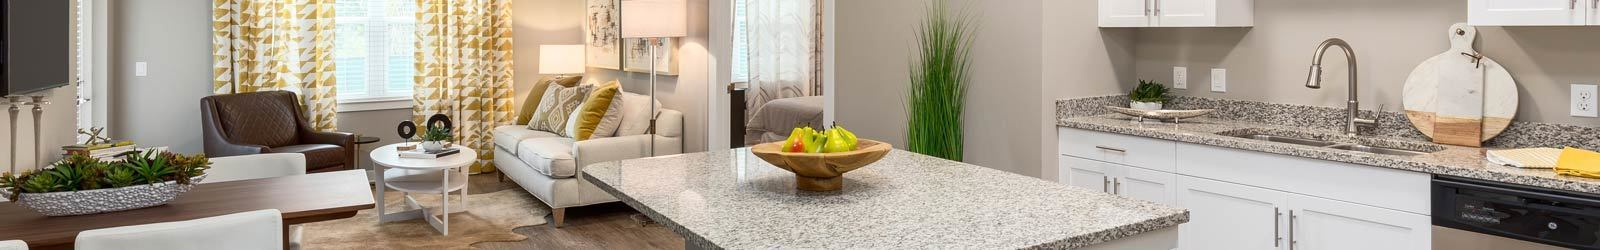 Studio, 1 & 2 bedrooms offered at apartments in Sarasota